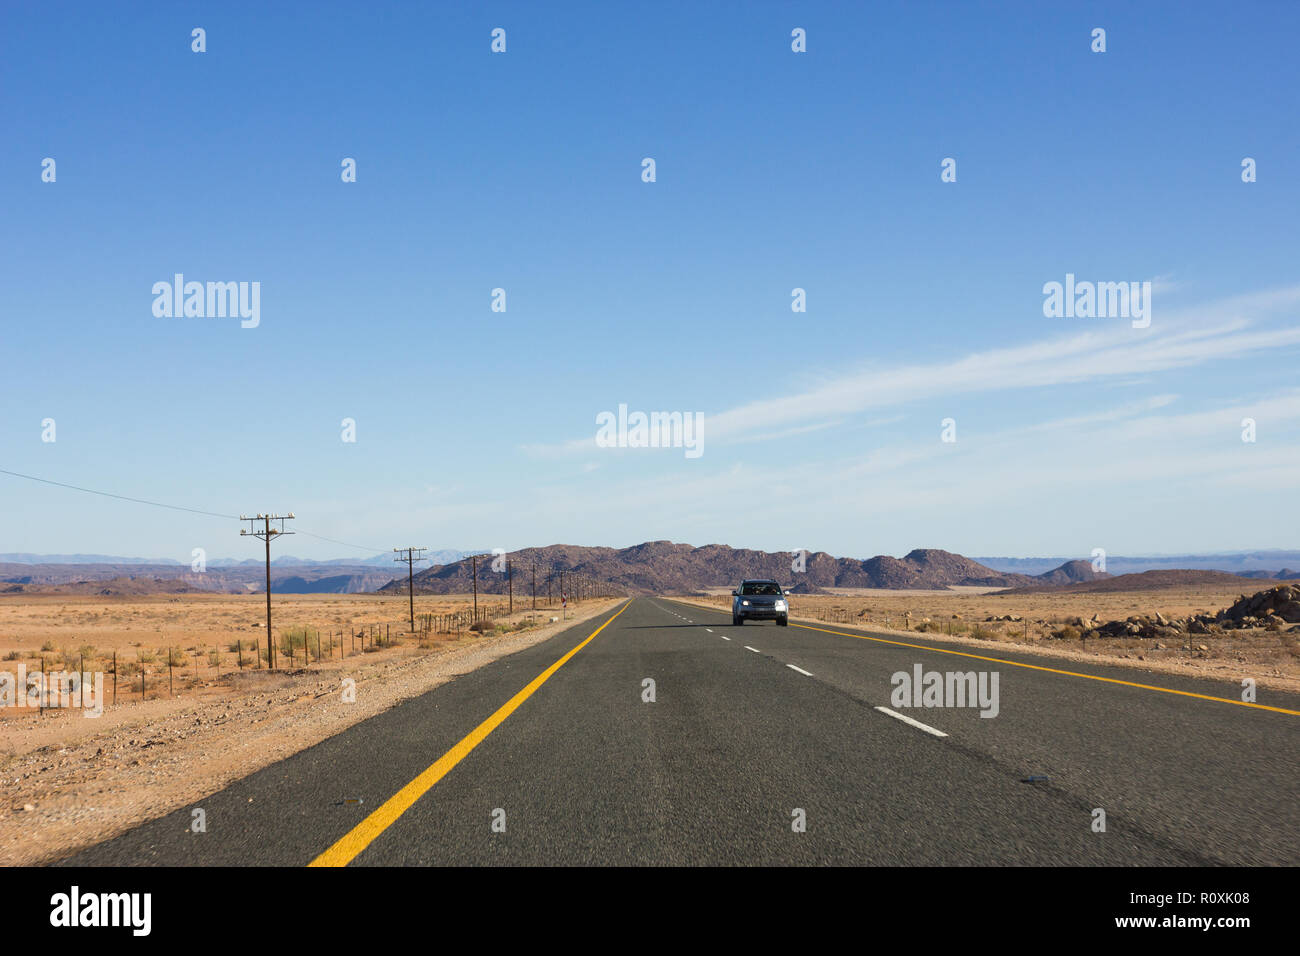 passenger vehicle on tarred national road in African dry and arid landscape on the Cape Namibia route - Stock Image